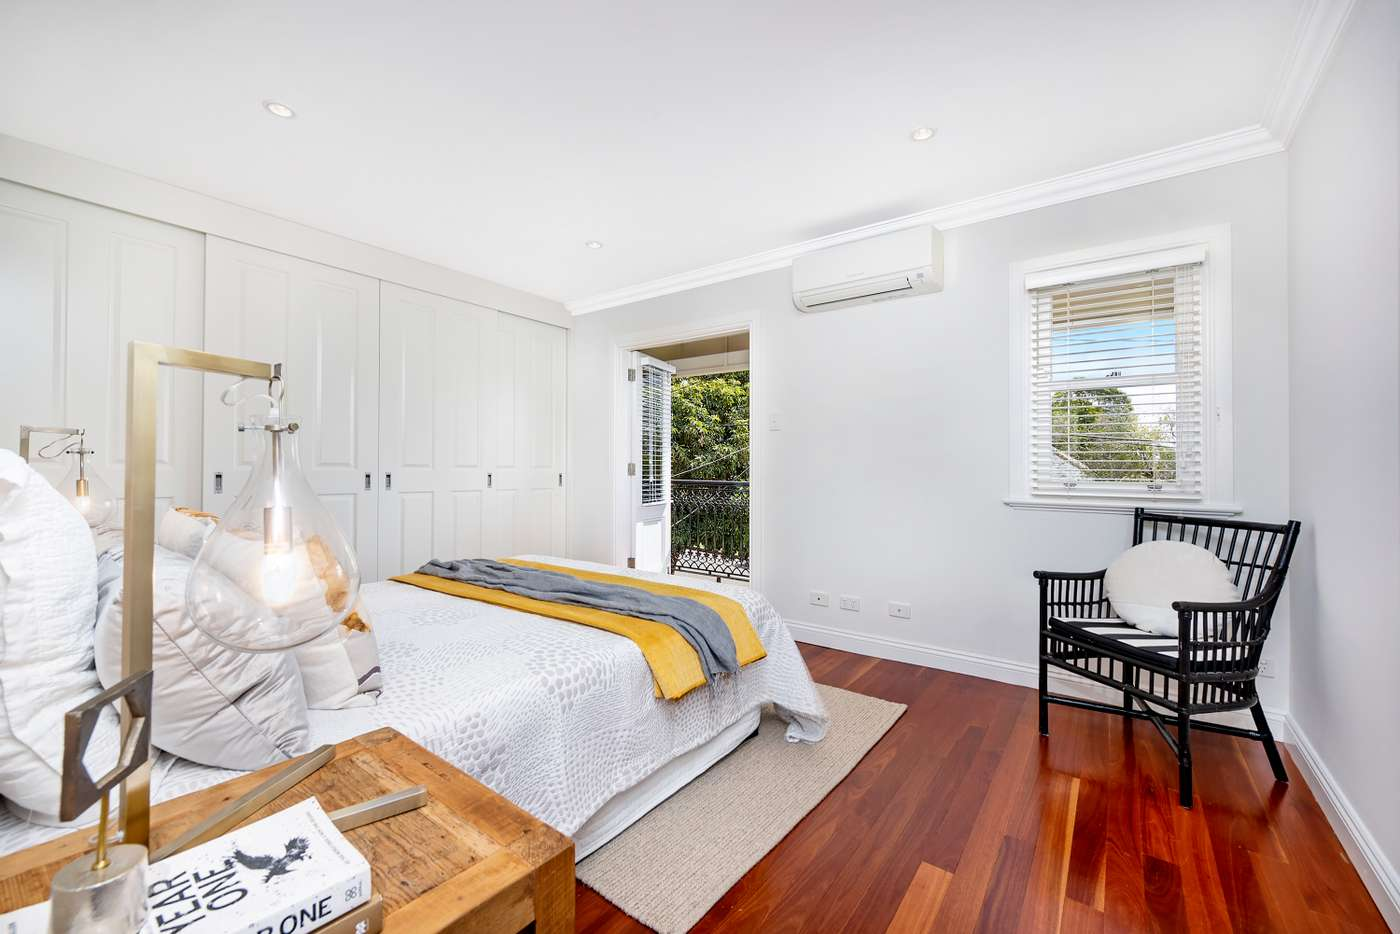 Fifth view of Homely house listing, 70 Park Avenue, Ashfield NSW 2131